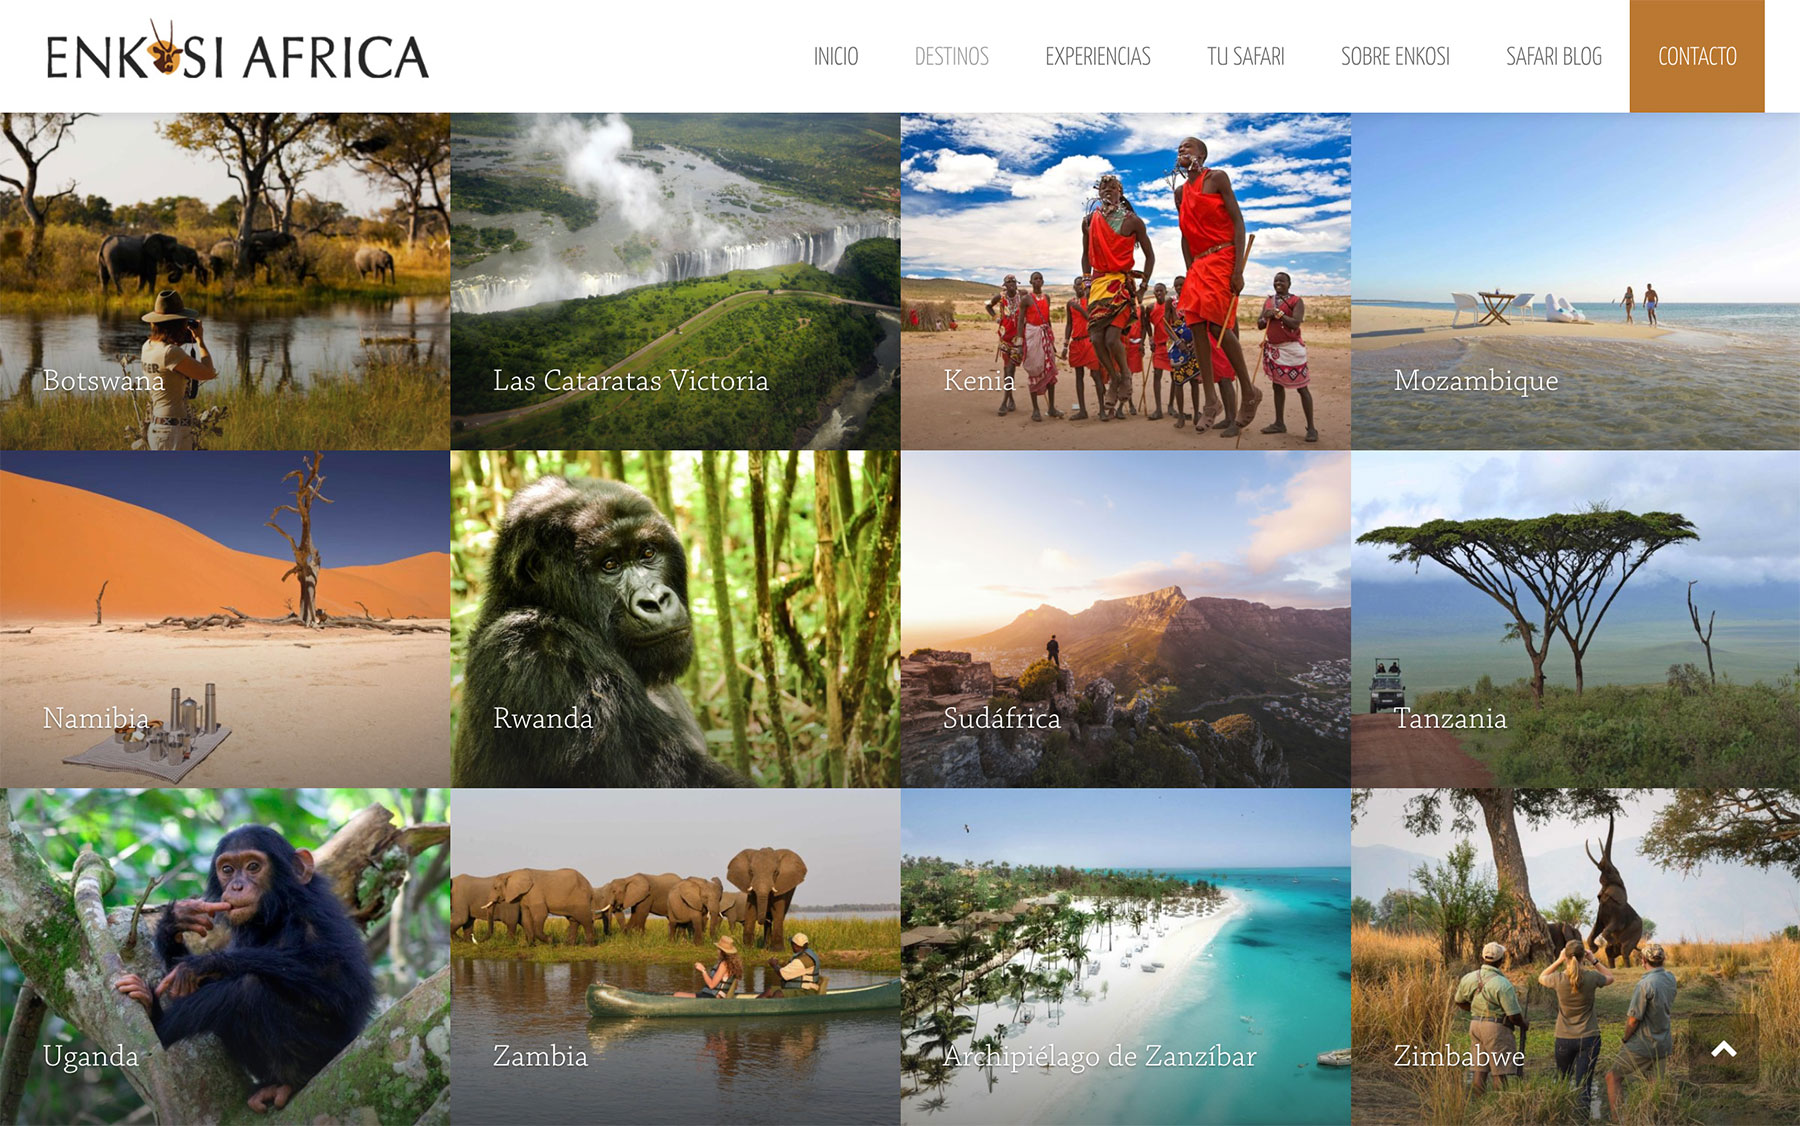 enkosi-africa-new-website-destinos-1800